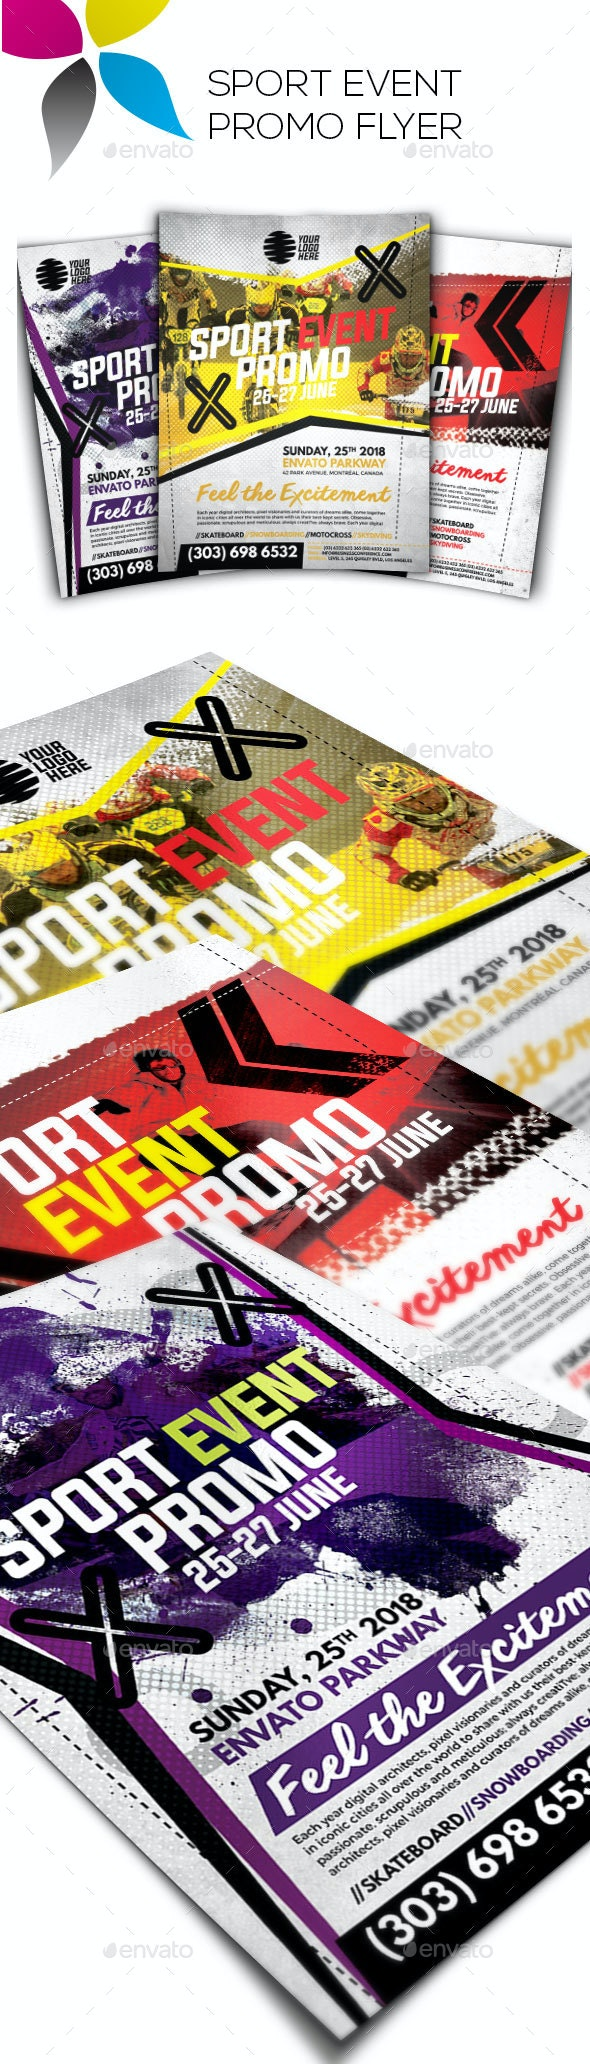 Sport Event Promo Flyer - Sports Events